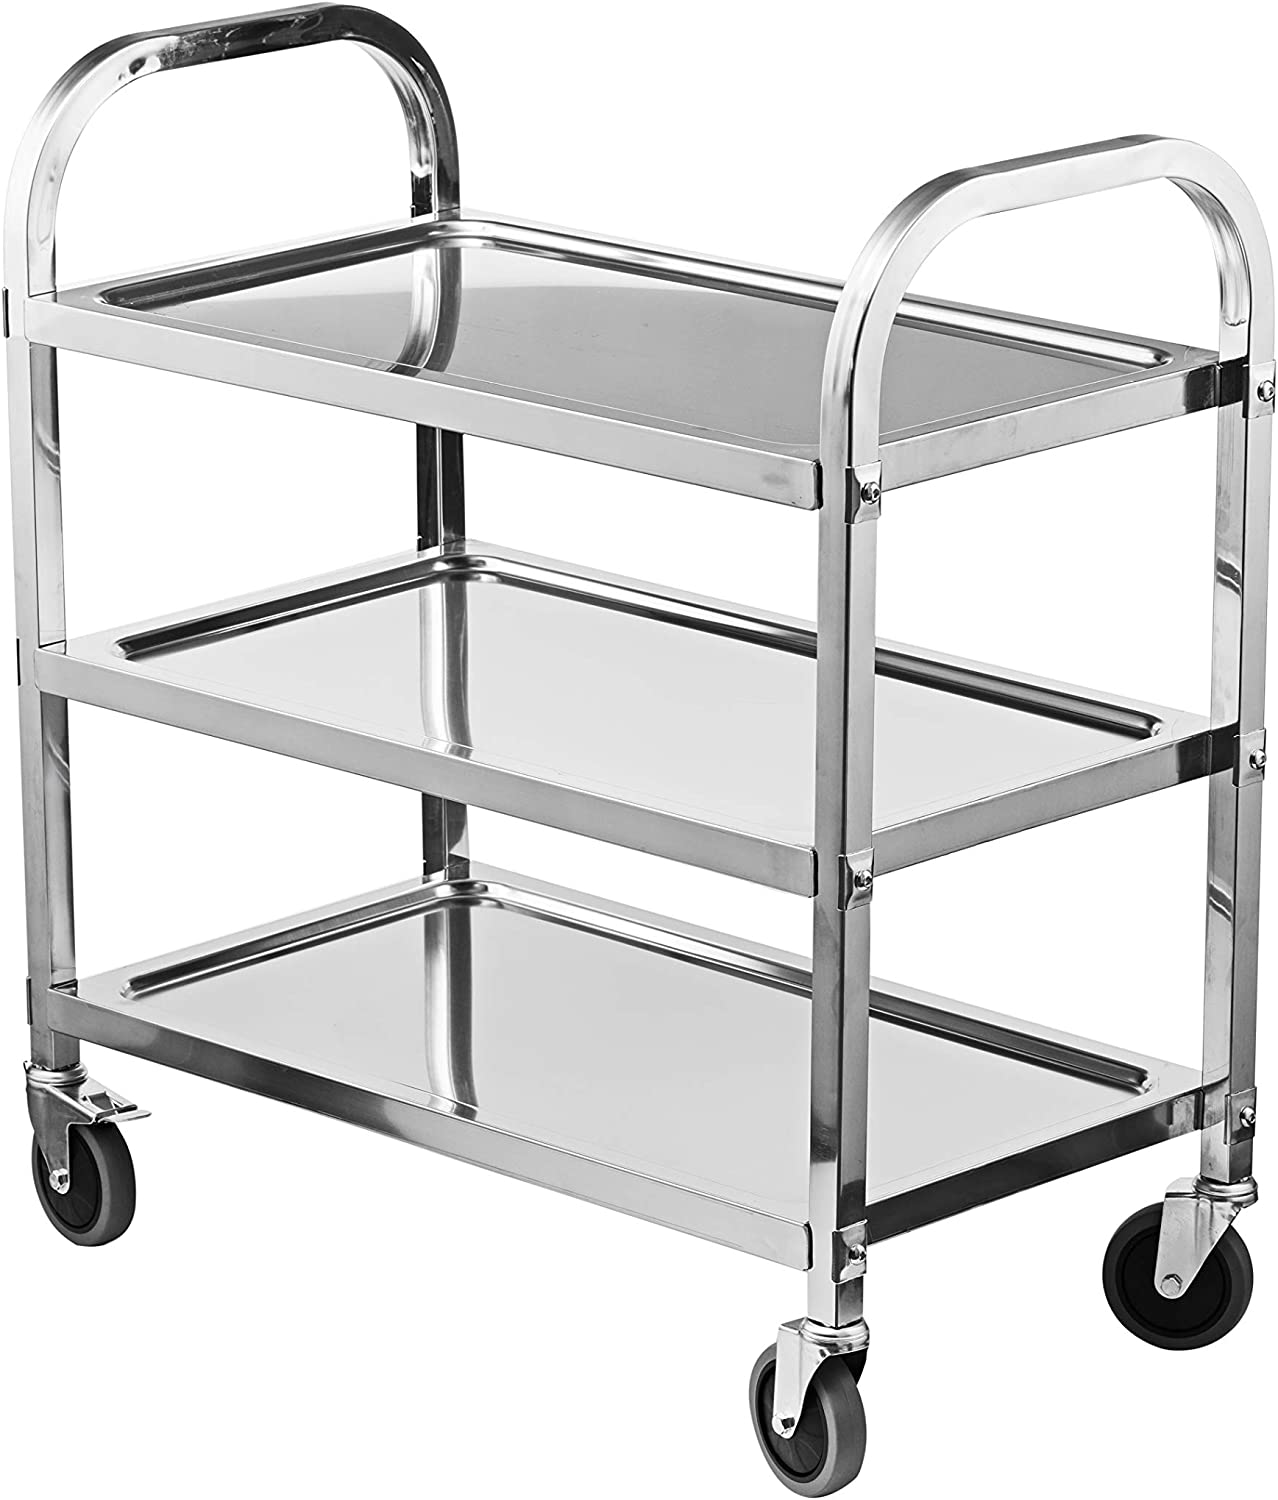 Hotels Restaurants Bamboo Kitchen Trolley with Wheels 3 Tier Storage Trolley Vintage Serving Cart Trolley Catering Trolley Beauty Salon Cart Storage/Rolling Trolley Storage Organiser for Kitchen